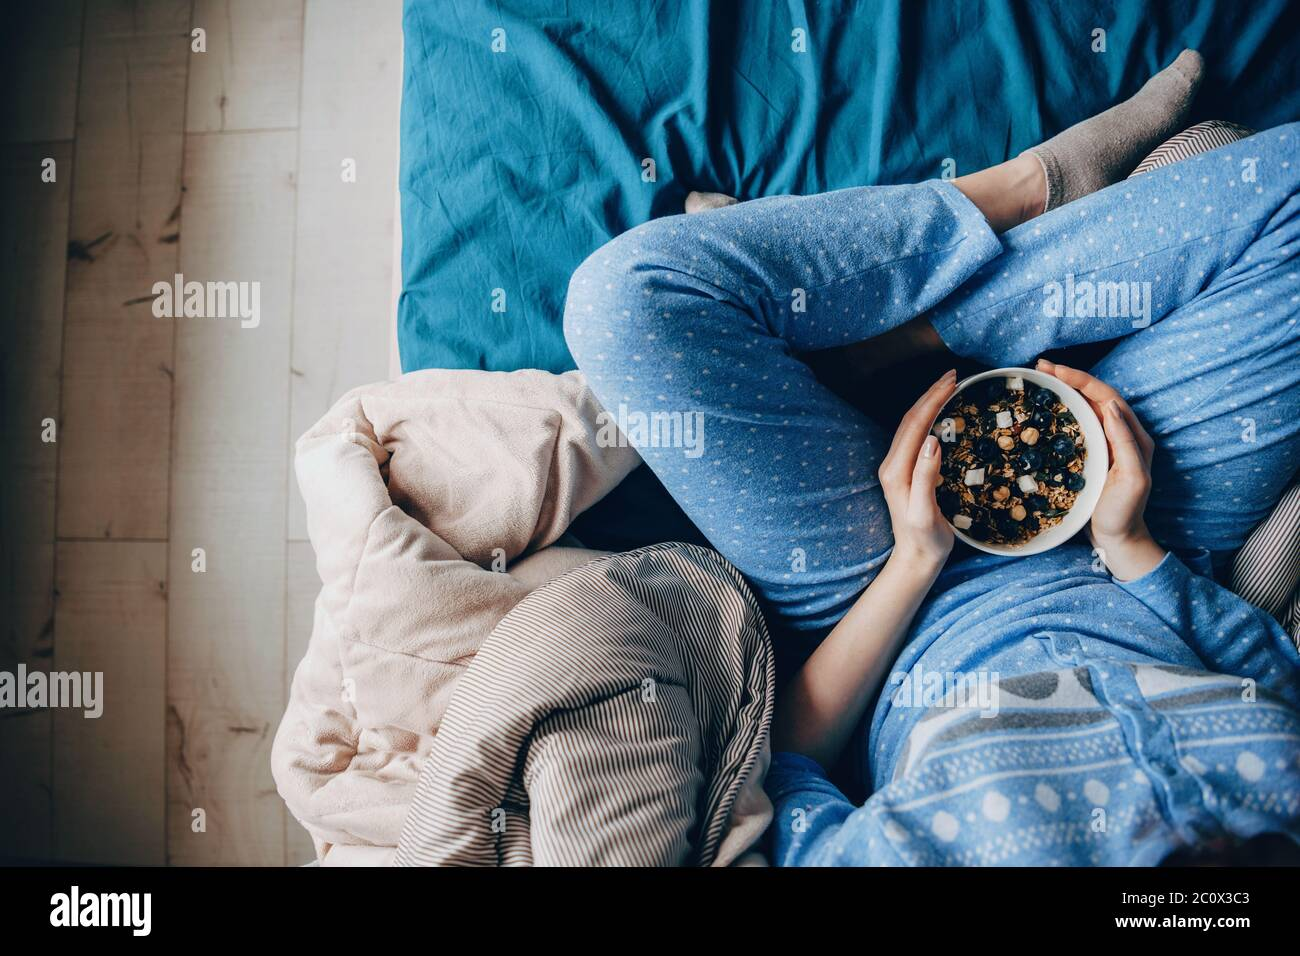 Upper view photo of a woman wearing pajama with healthy habits eating cereals Stock Photo